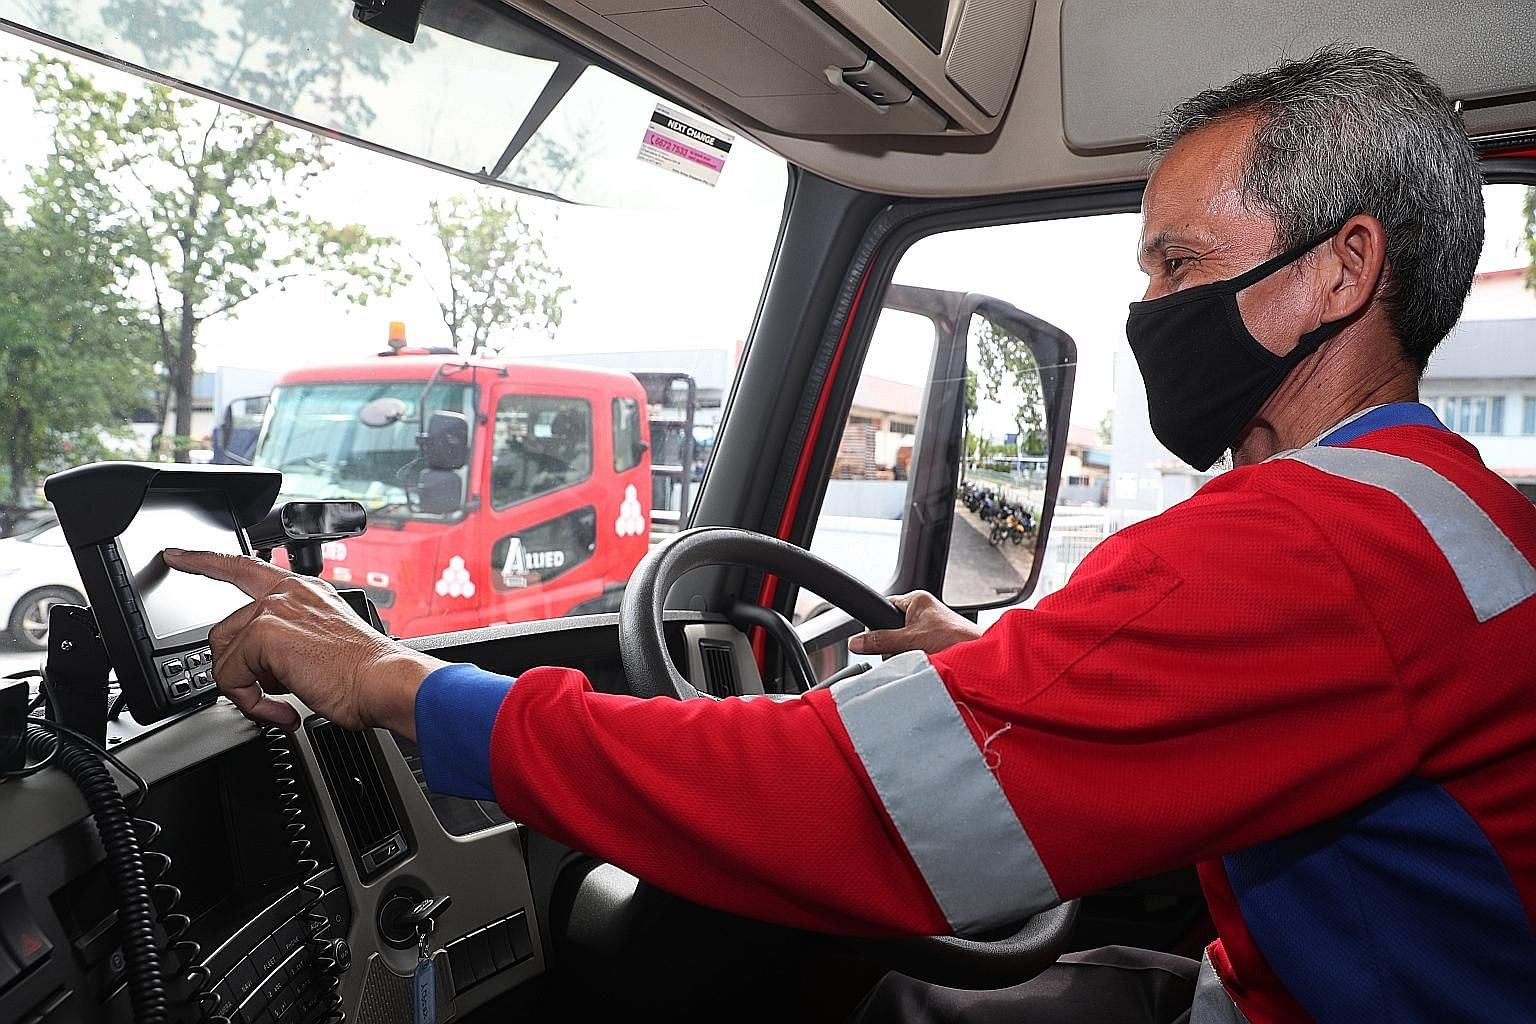 The system uses facial recognition technology to detect signs of fatigue, such as yawning, and then alerts an operations team which will check on the driver. Prime mover driver Mohamed Ali, 57, with Allied Container Services demonstrating the use of